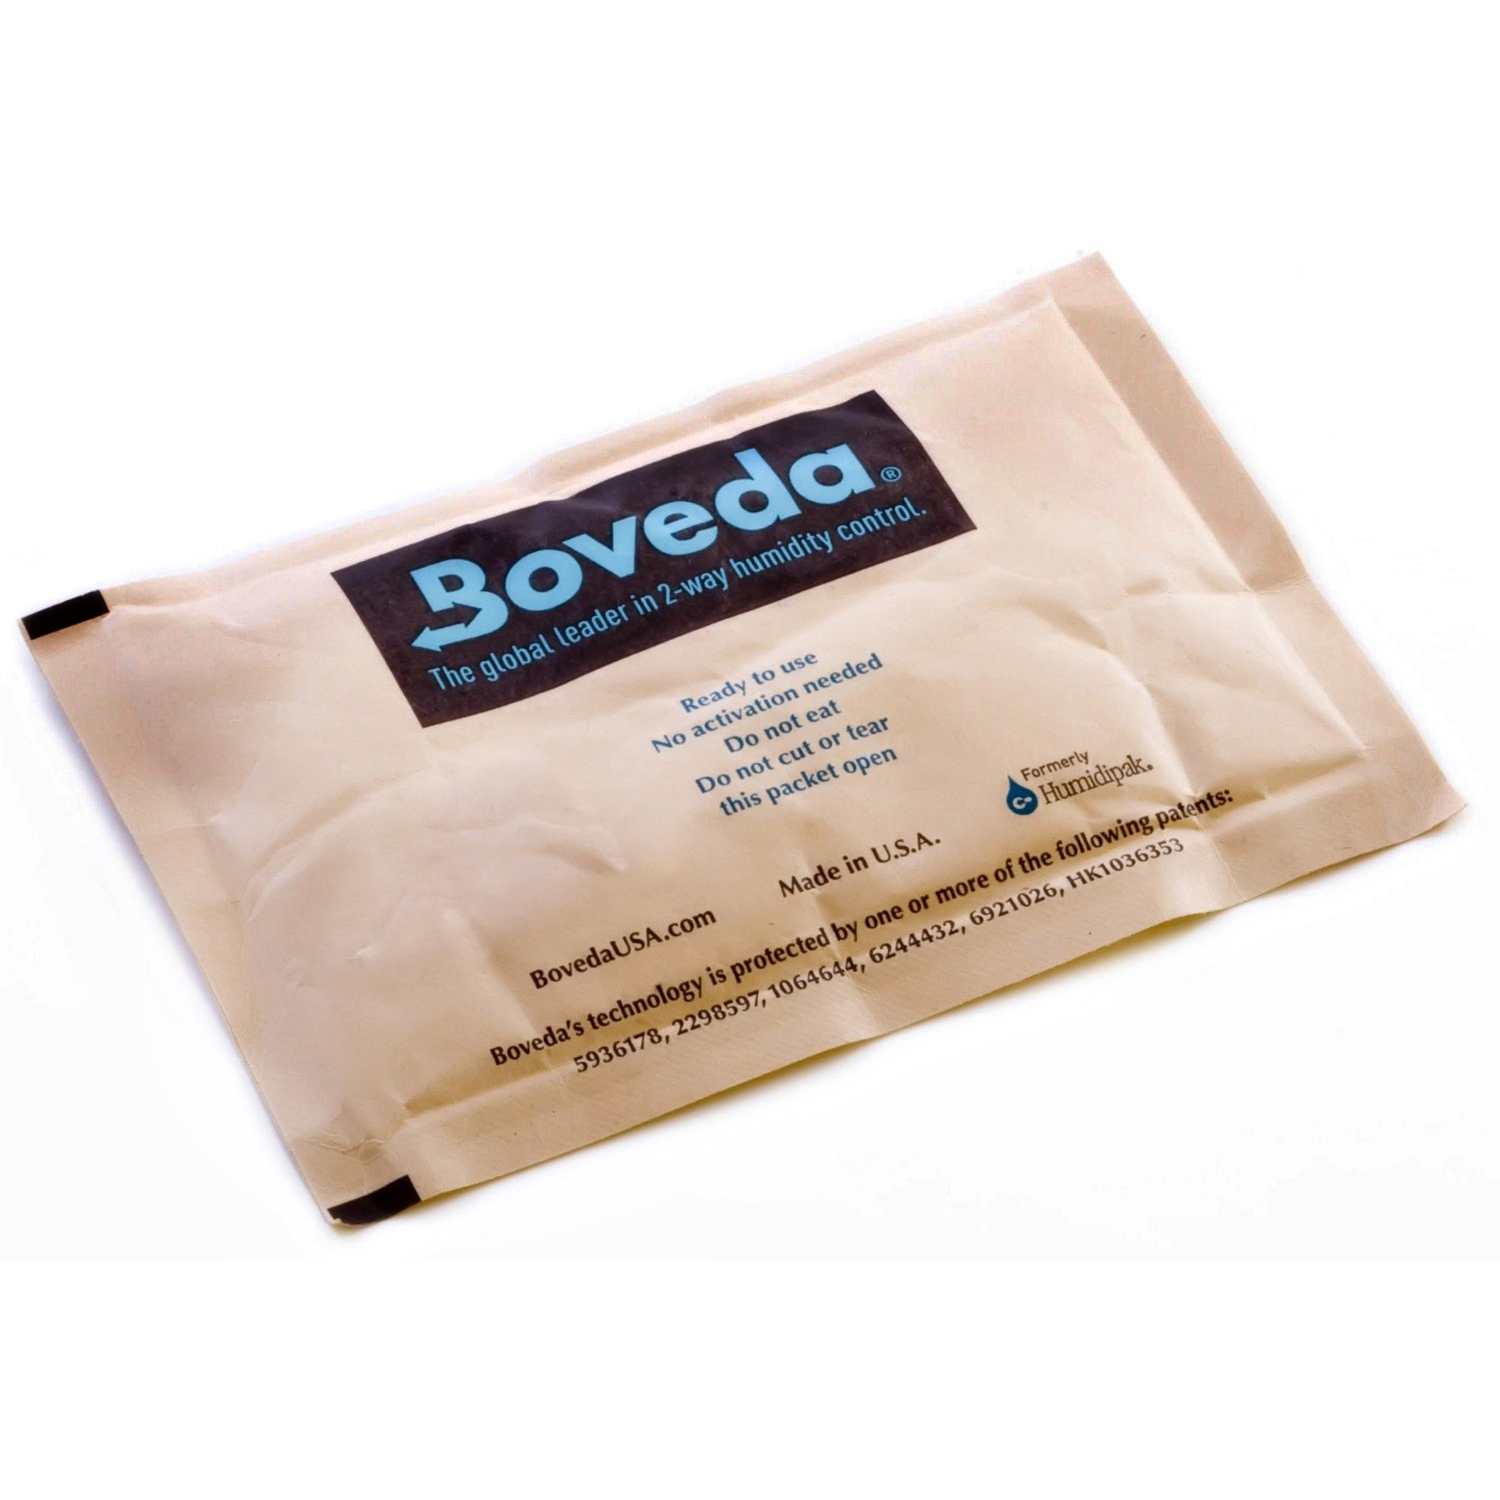 Boveda 2-Way Humidity Control in RH of 72